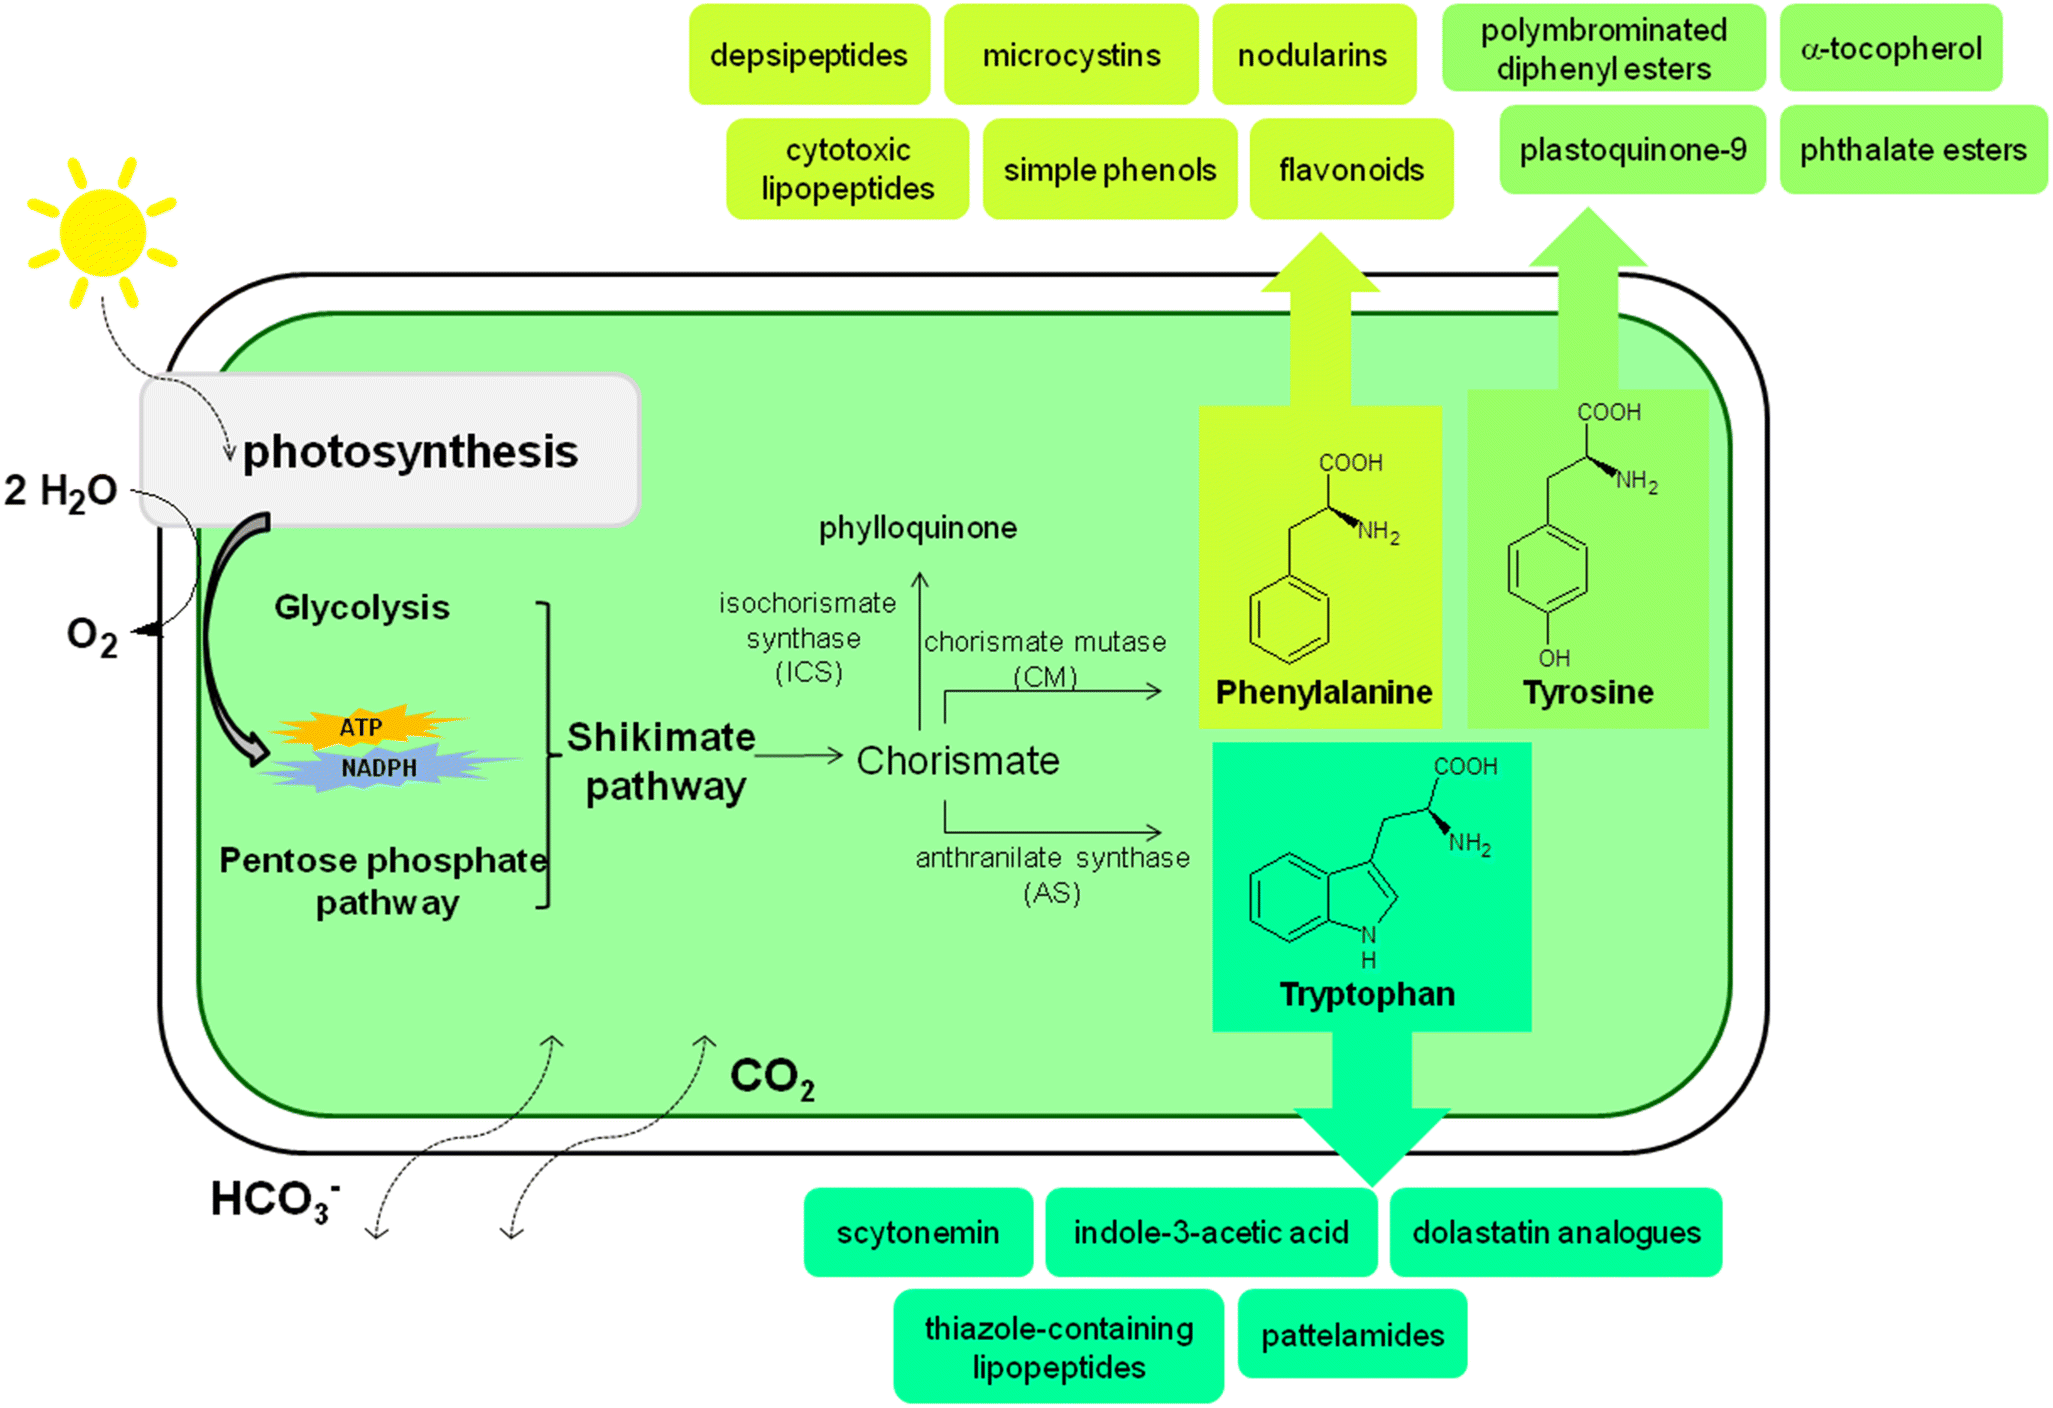 Metabolic relation of cyanobacteria to aromatic compounds